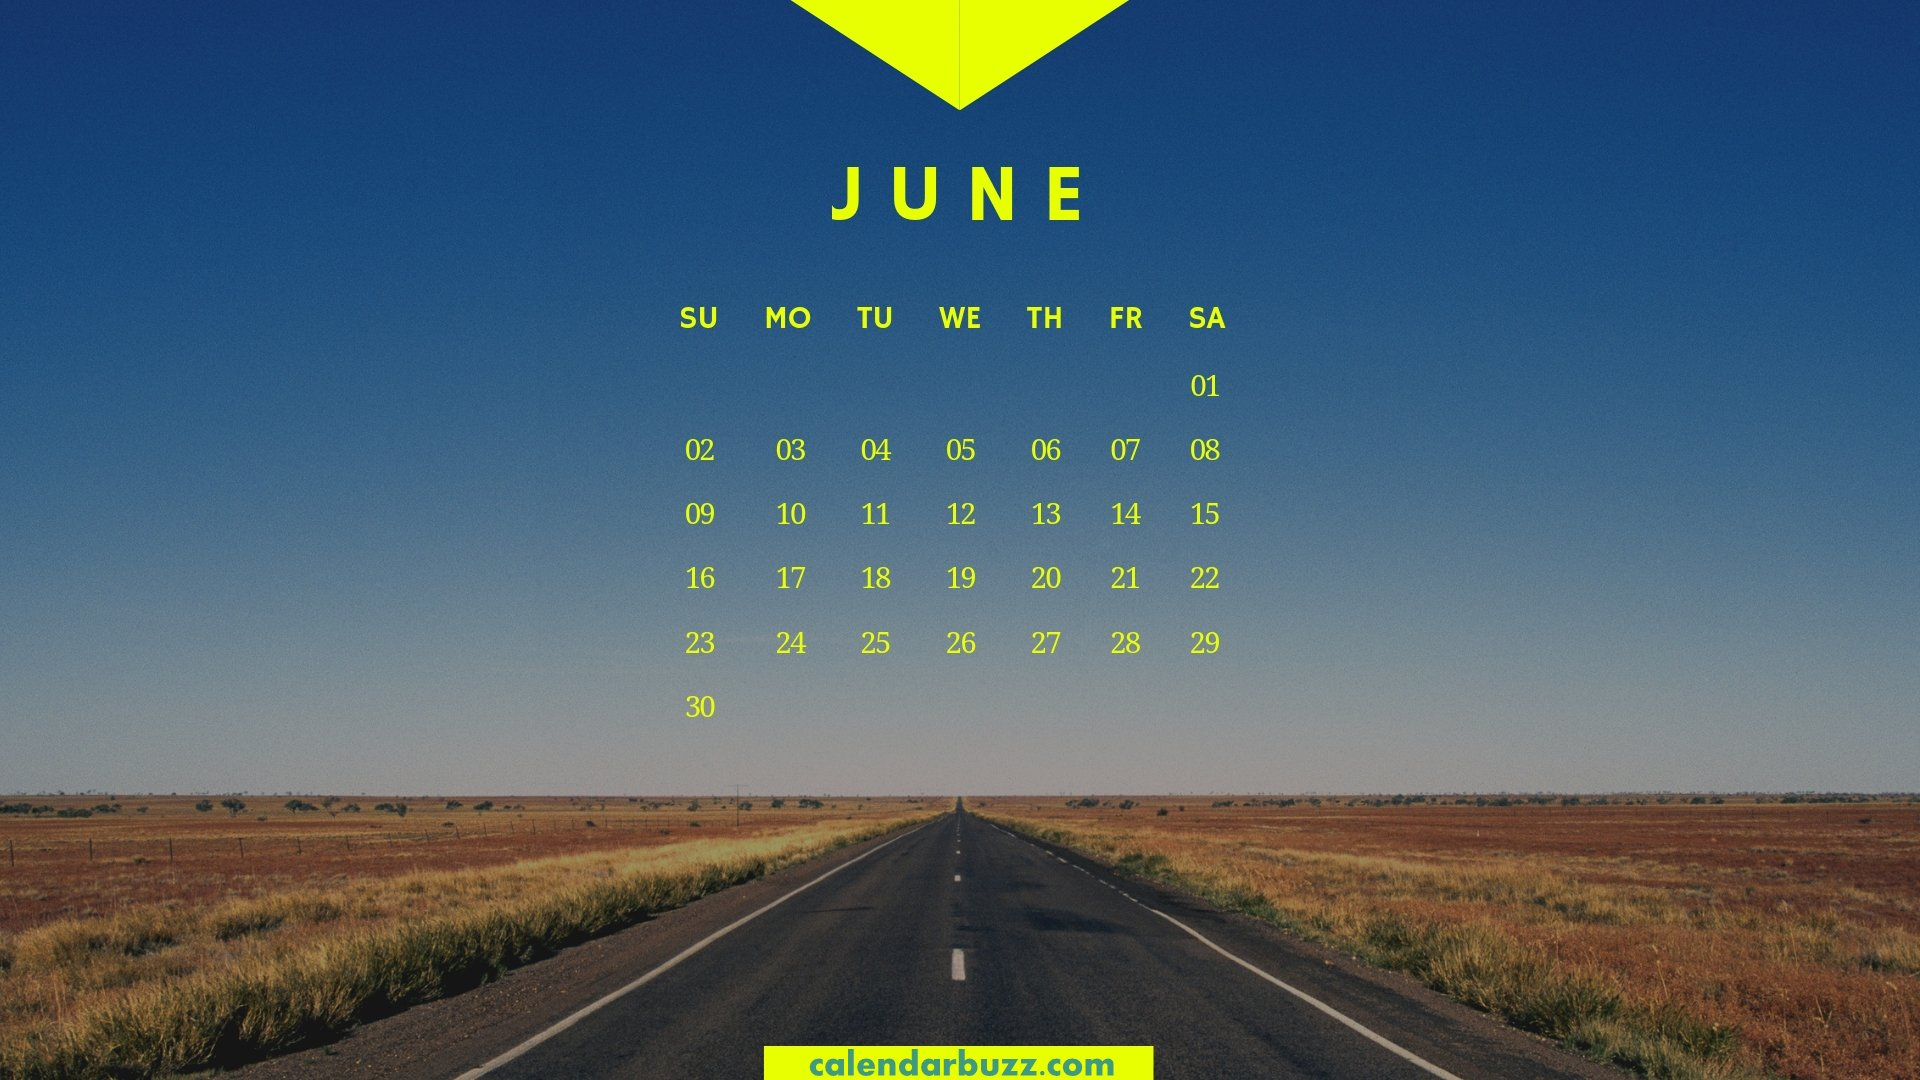 June 2019 Calendar HD Wallpaper